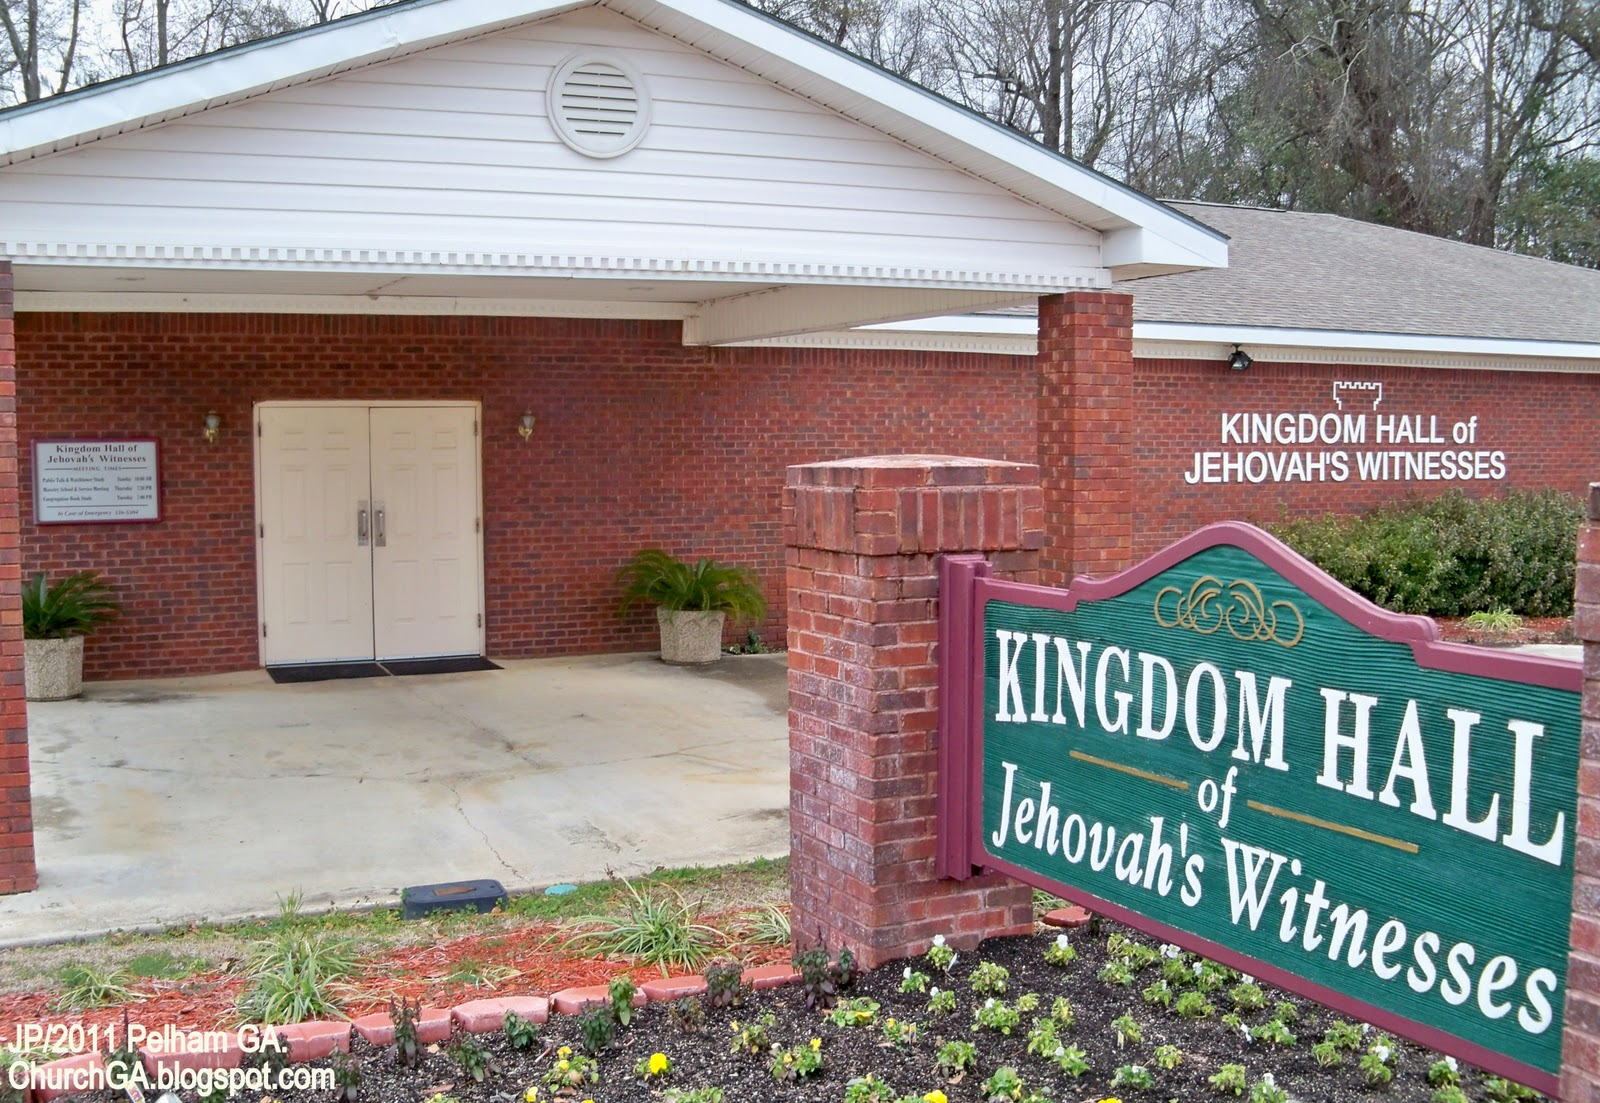 12 things you never knew about Jehovah's witnesses - Catholic